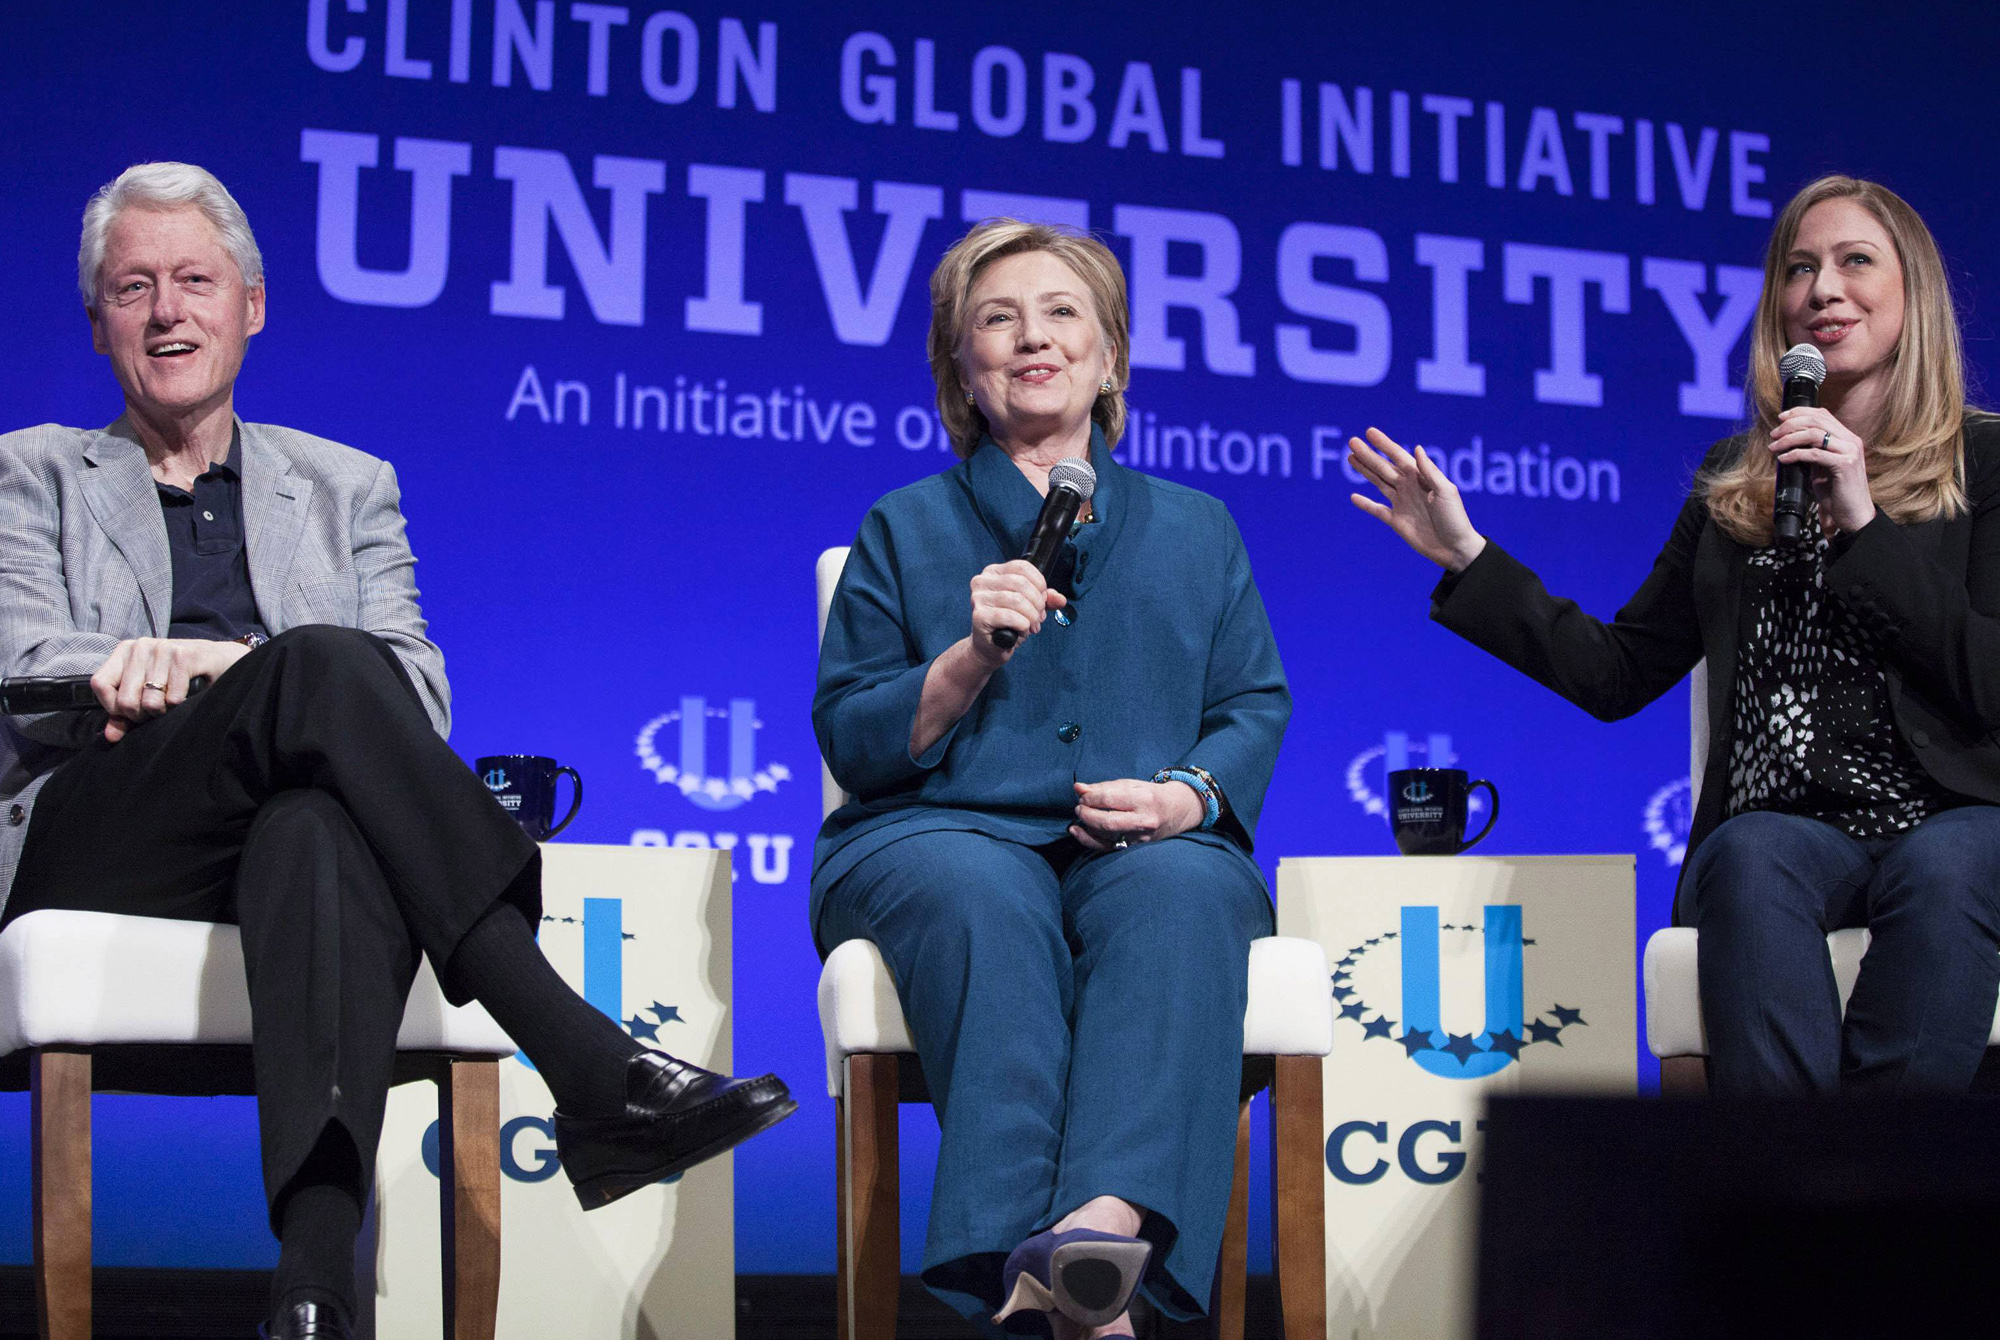 Of all people, the Clintons know there are no mulligans in the game of politics. So why didn't they act sooner to address what appears like conflicts of interest involving the Clinton Foundation and their government roles and ambitions?